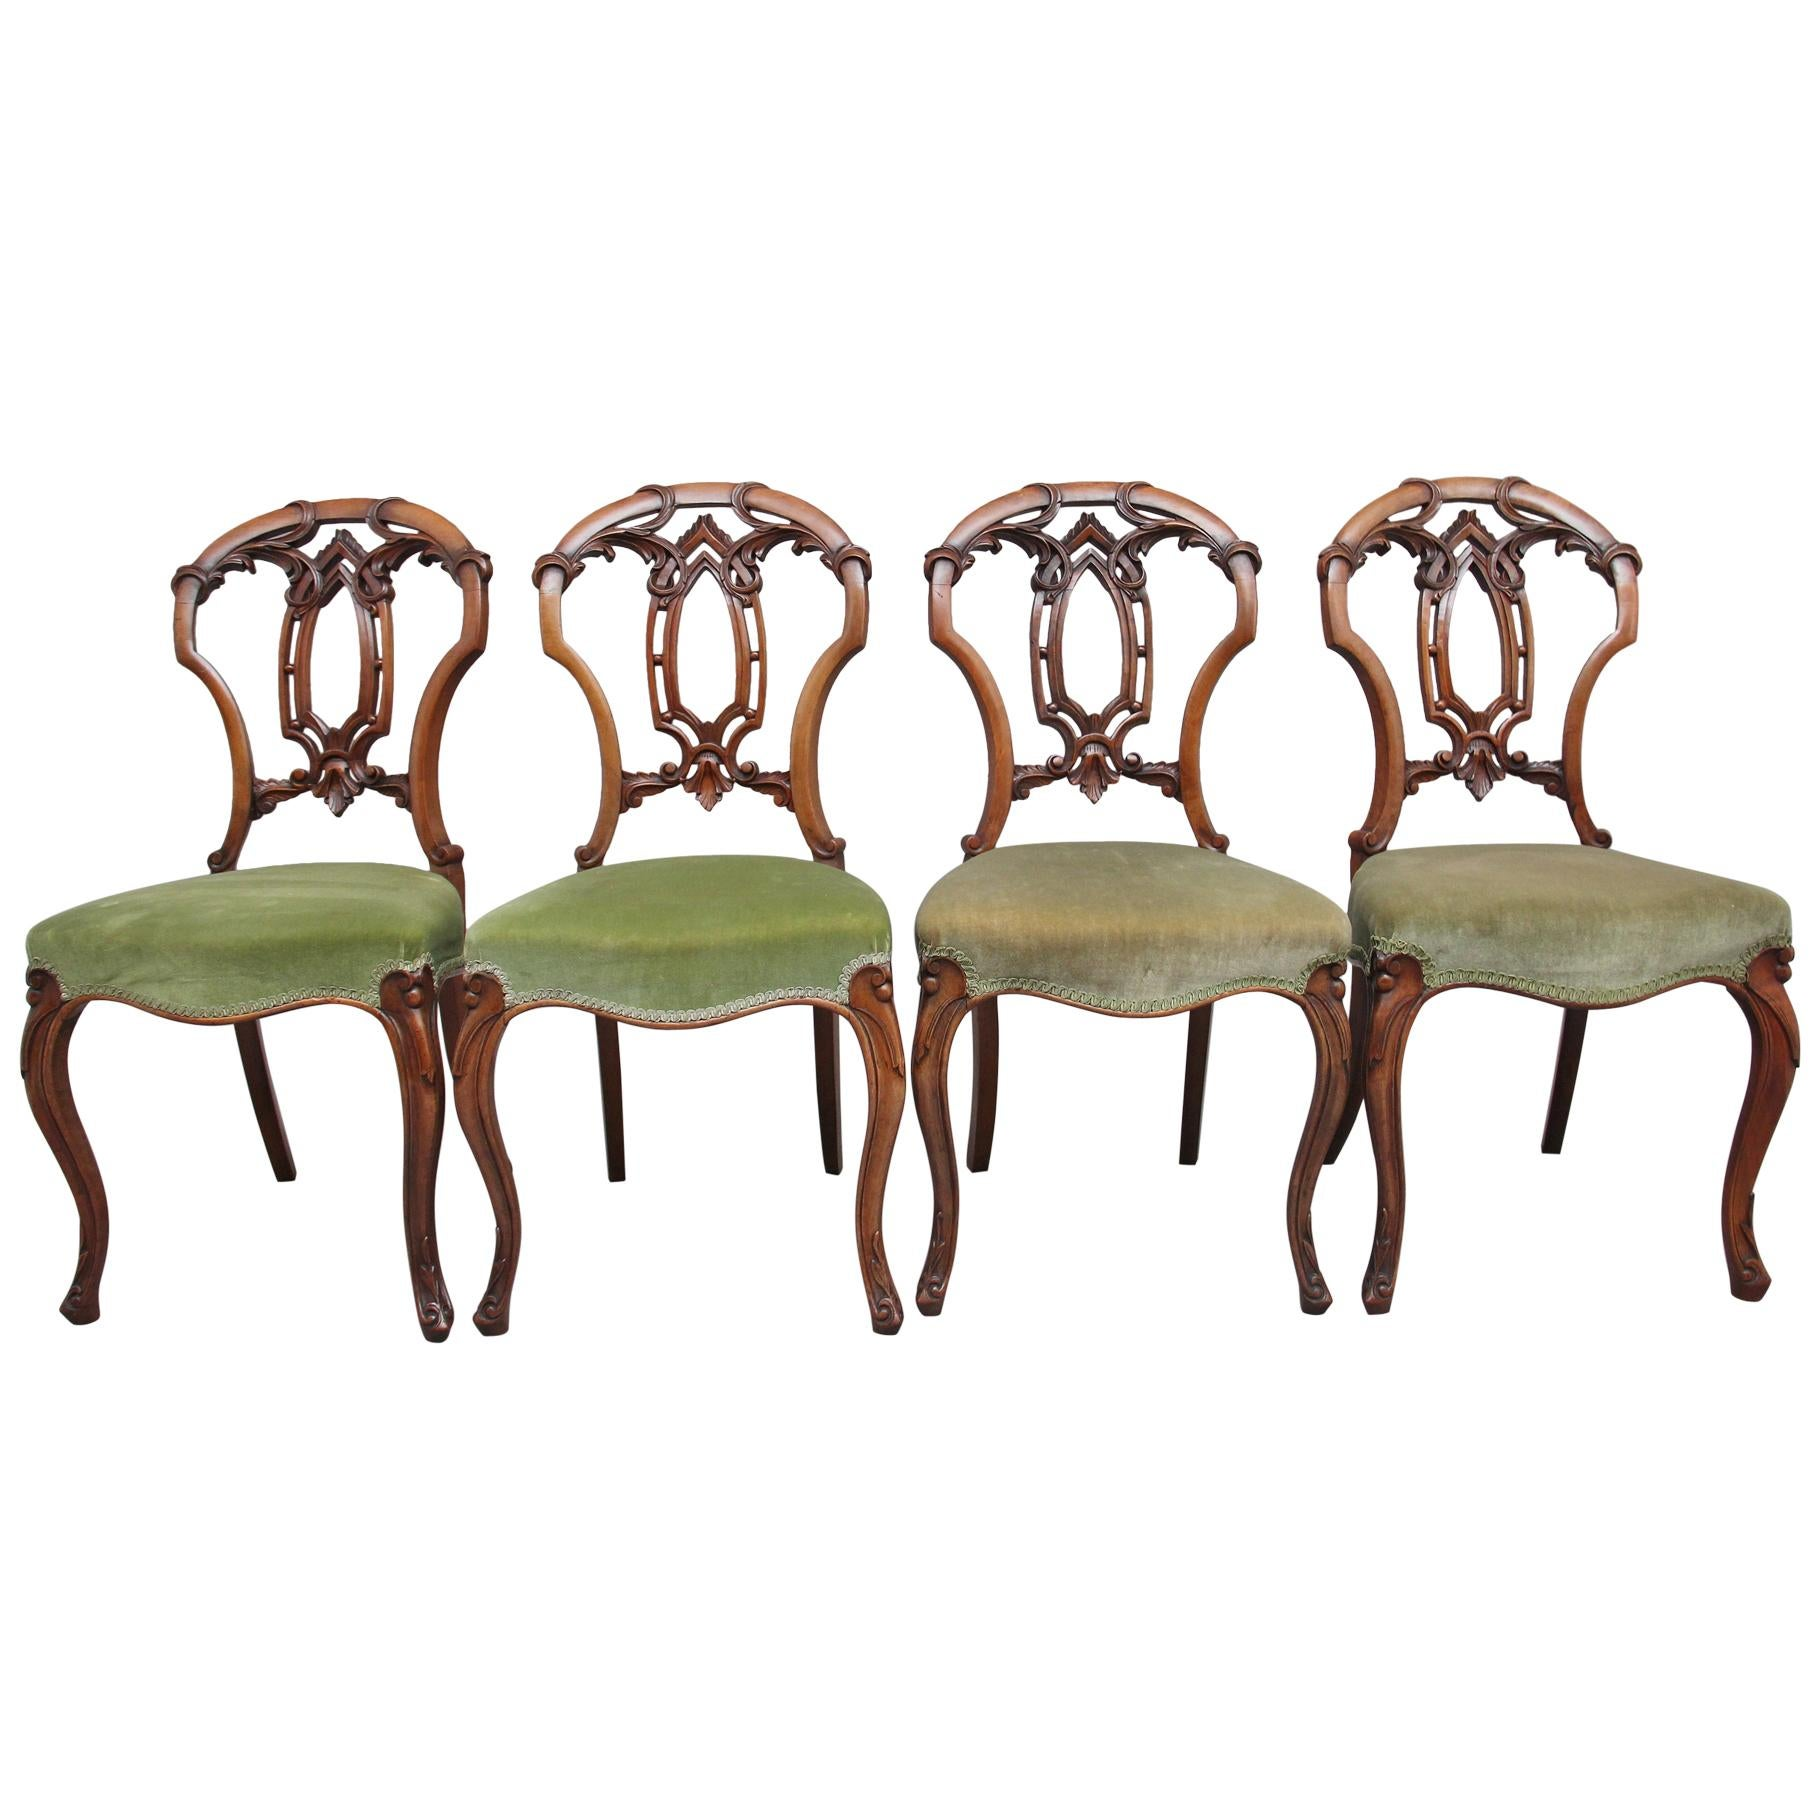 Set of Four 19th Century Walnut Dining Chairs